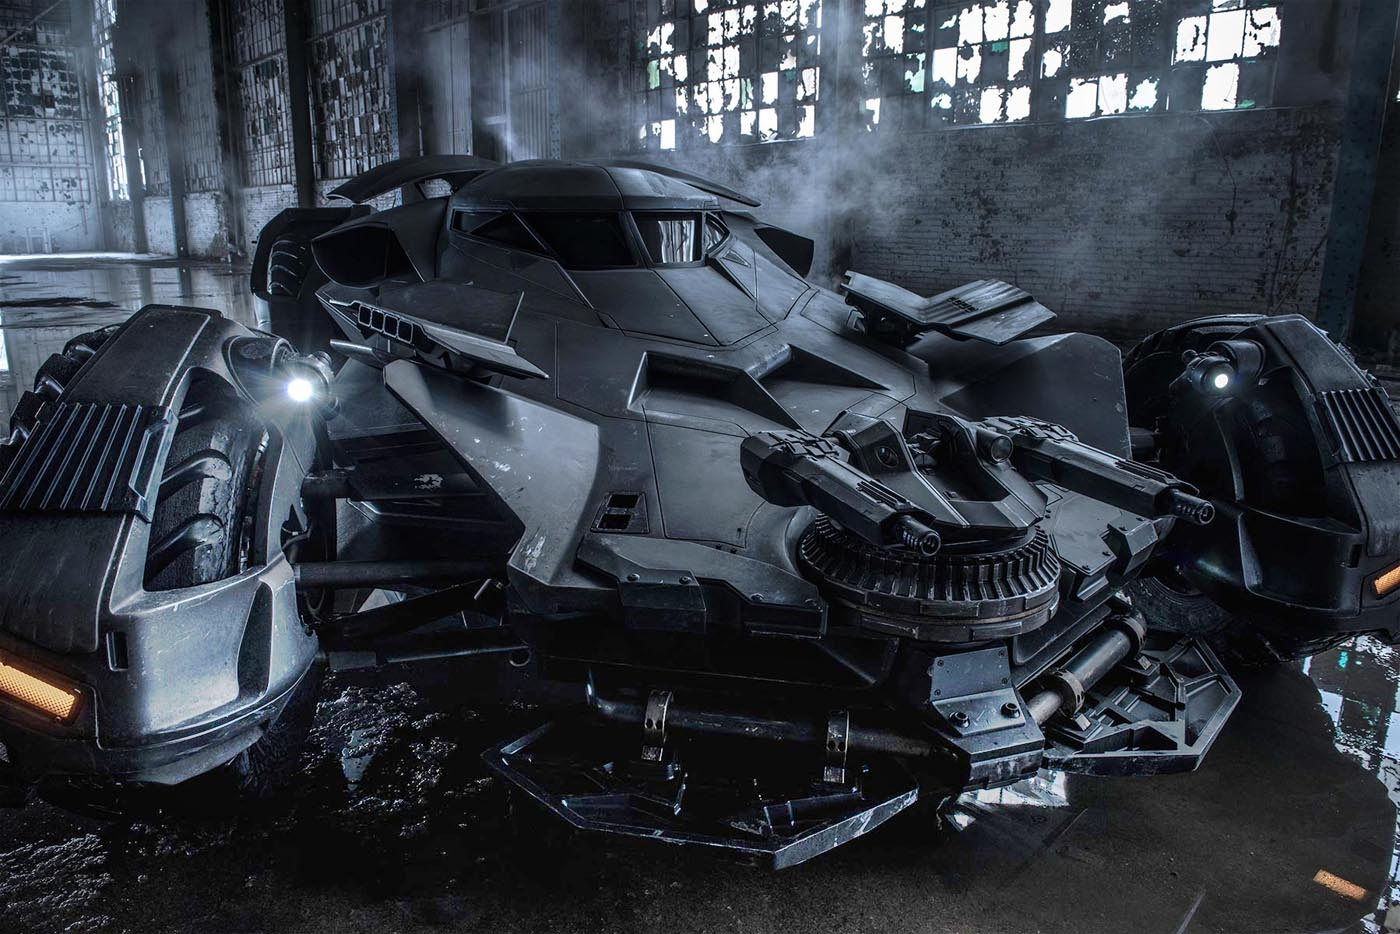 Batmobile spotted on Suicide Squad Set